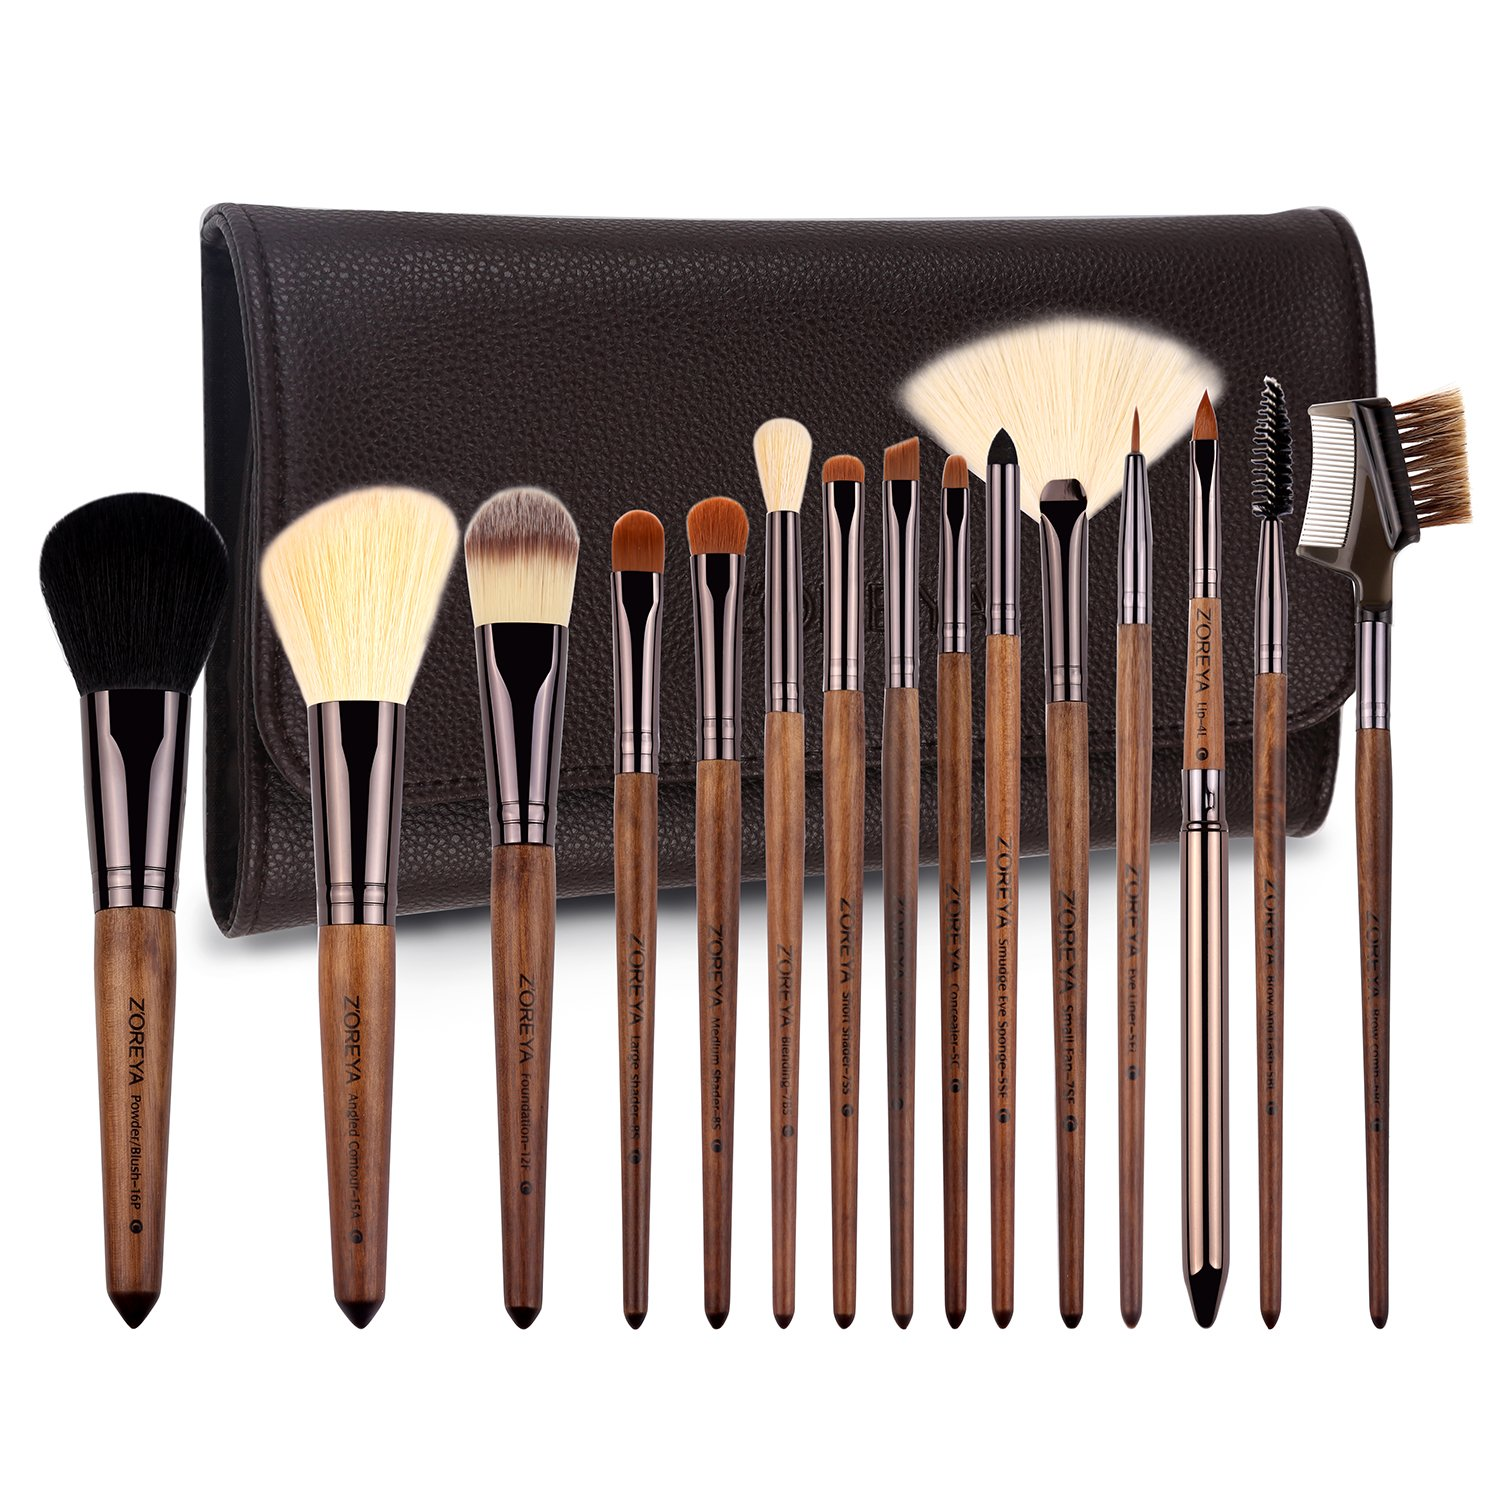 ZOREYA Makeup Brushes Set Walnut Professional Synthetic 15pcs High End Make up Brush Set For Cosmetic Make Up Contouring Powder Contour Foundation Eyebrow Eye shadow with Brush Case Holder